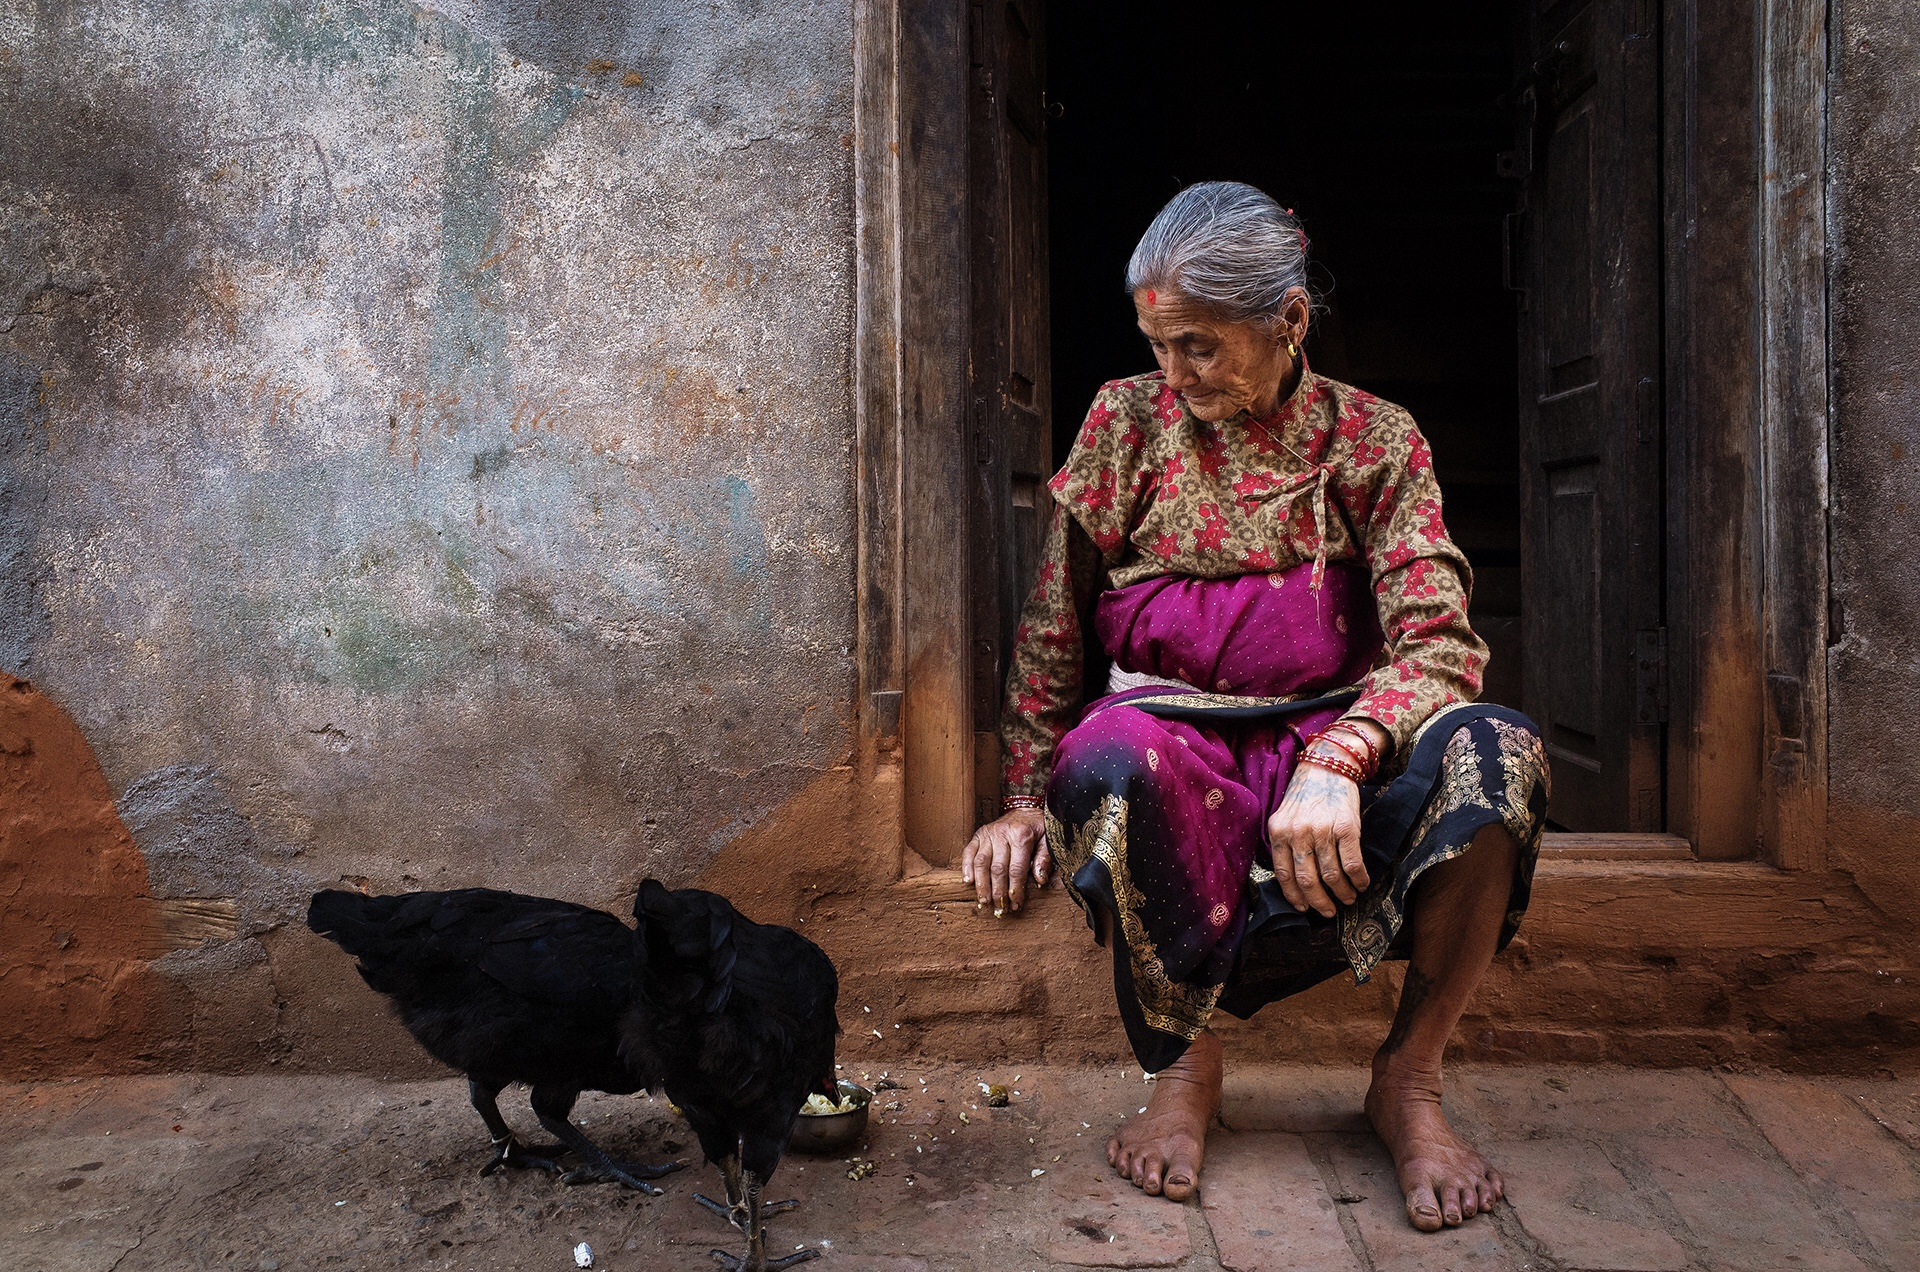 A gray-haired woman in colorful native dress, sitting in a doorway, watching two black hens scratching for food